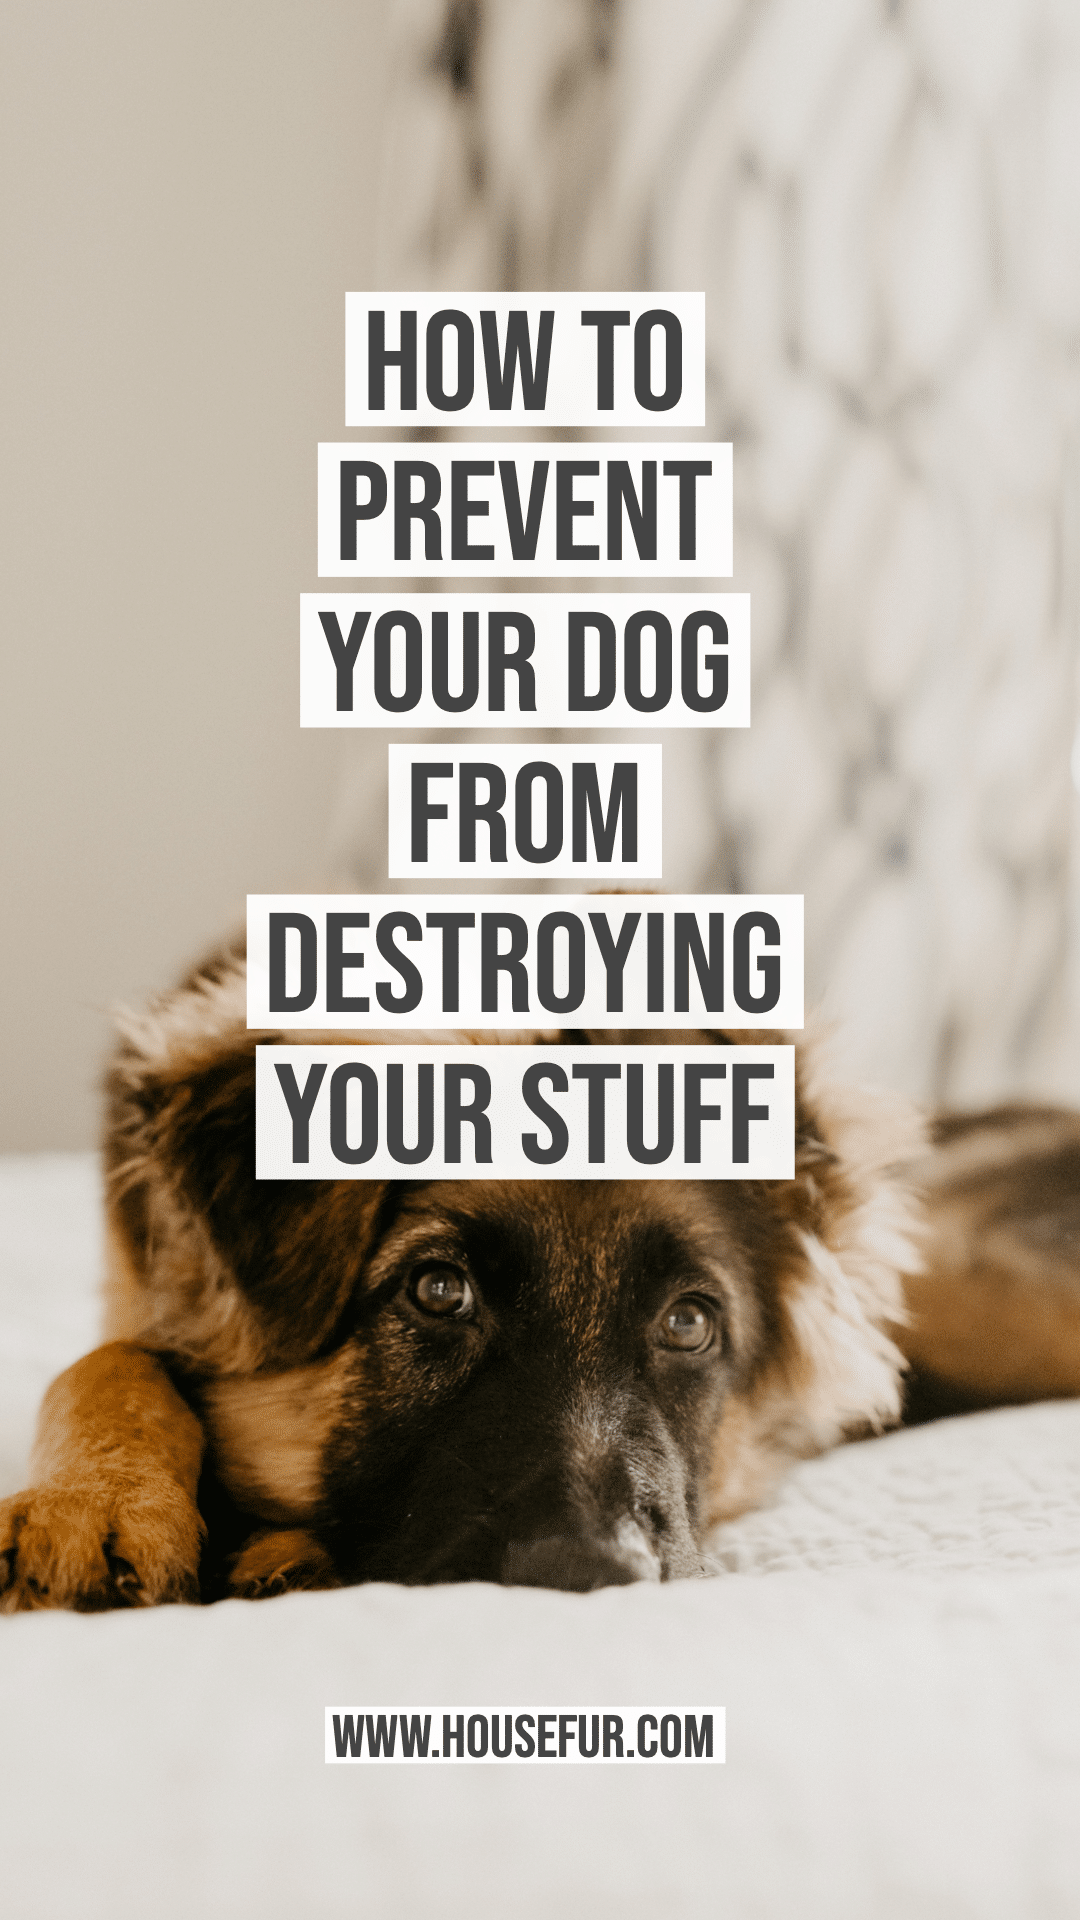 How to Prevent Your Dog from Destroying Your Stuff in 2020